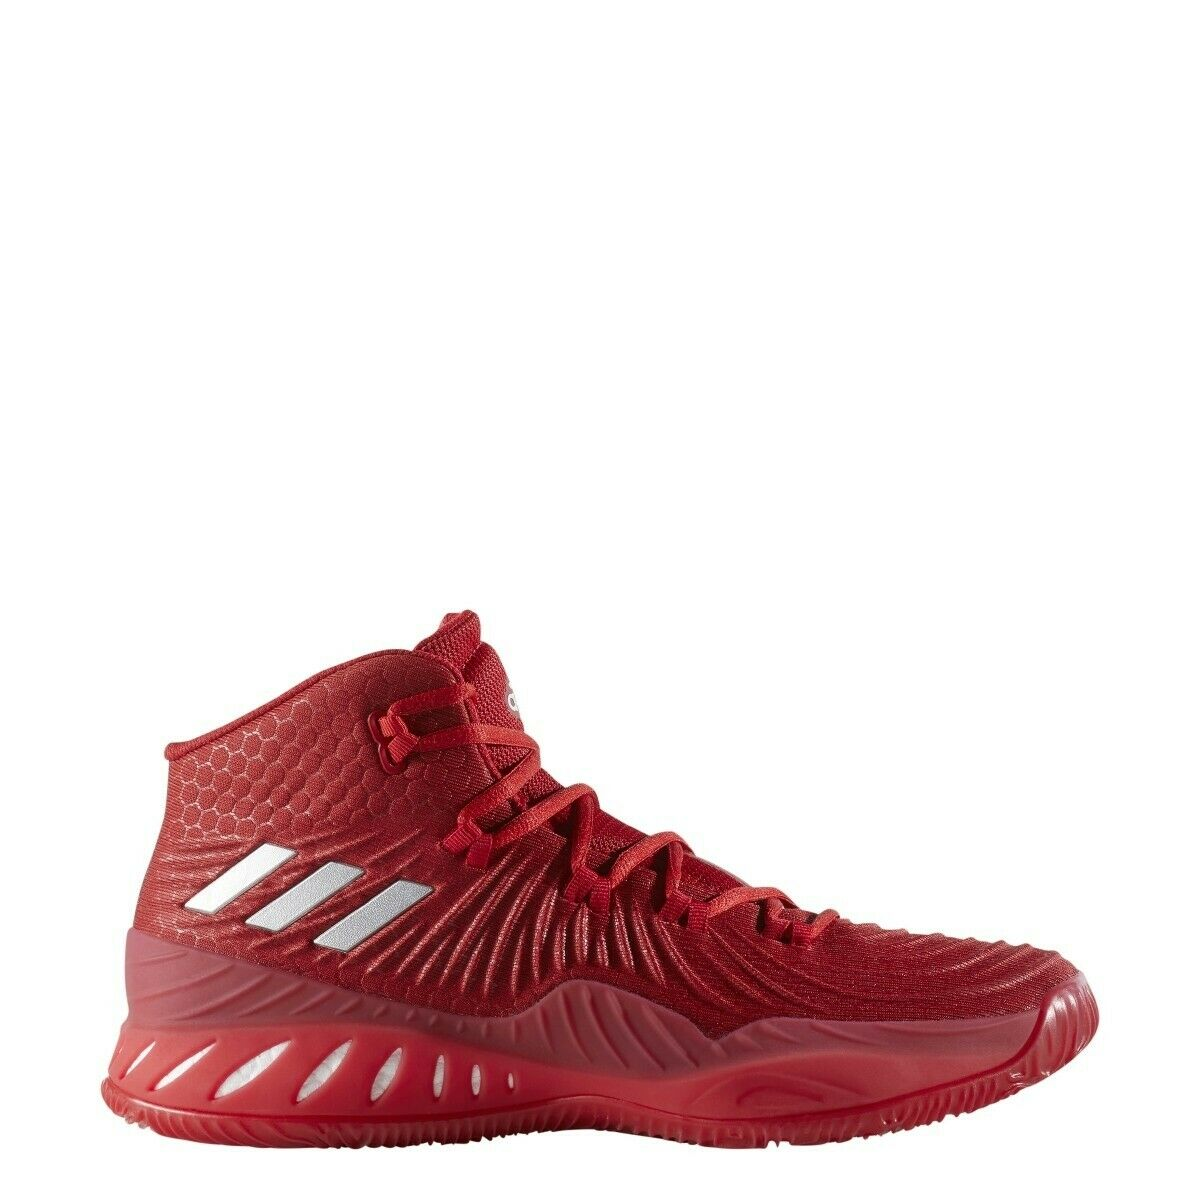 New Other Adidas Crazy Explosive 2017 Mens 14 Basketball shoes Red White